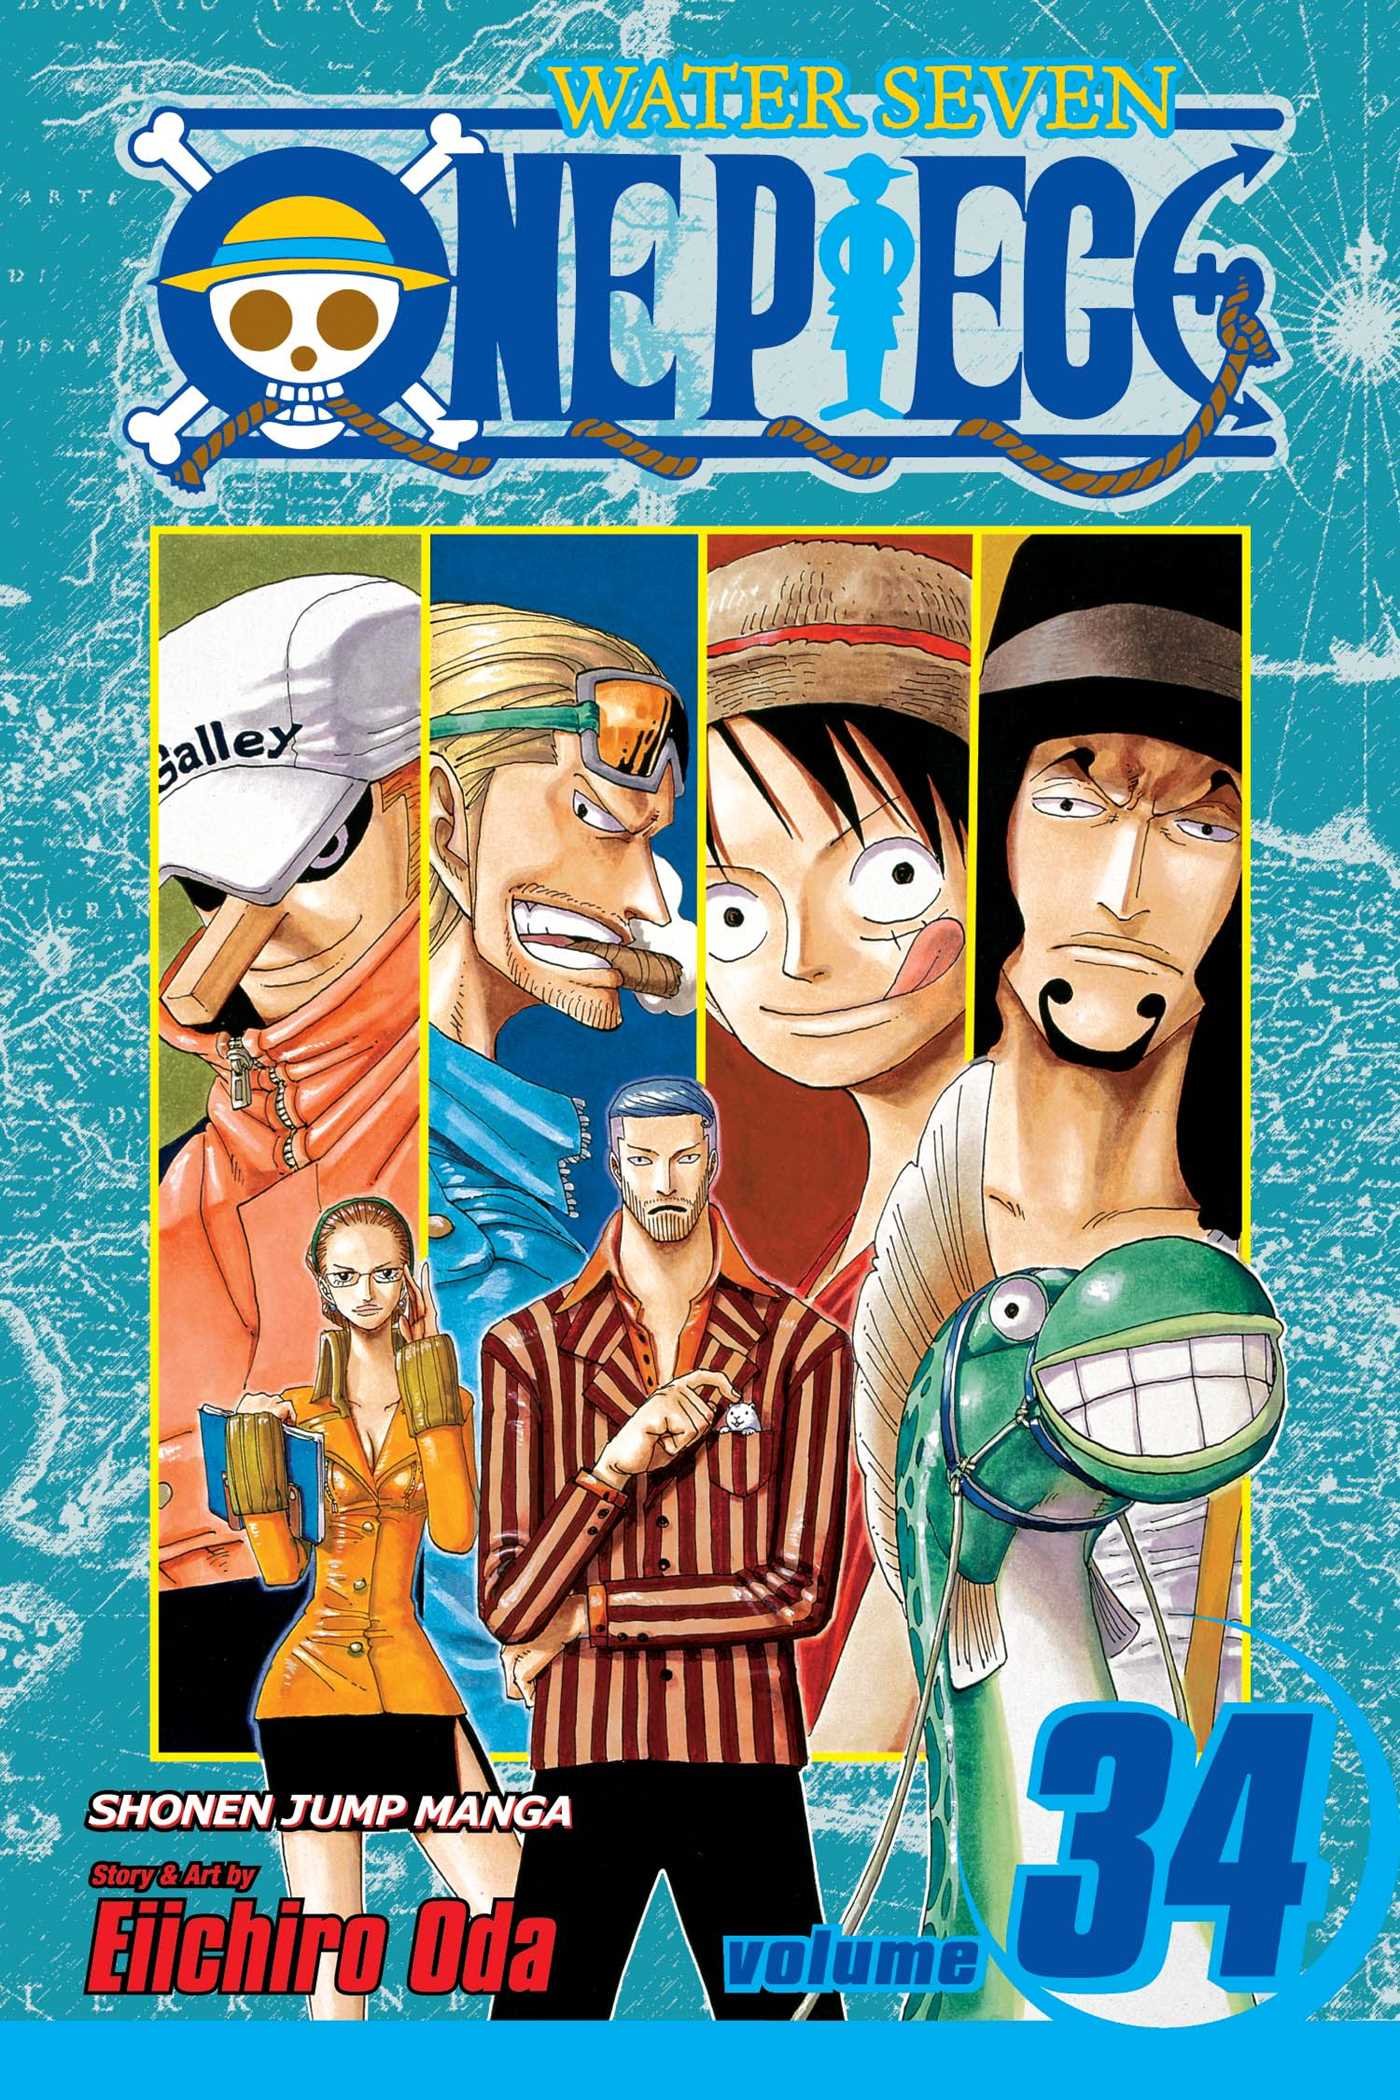 One-piece-vol-34-9781421534503_hr